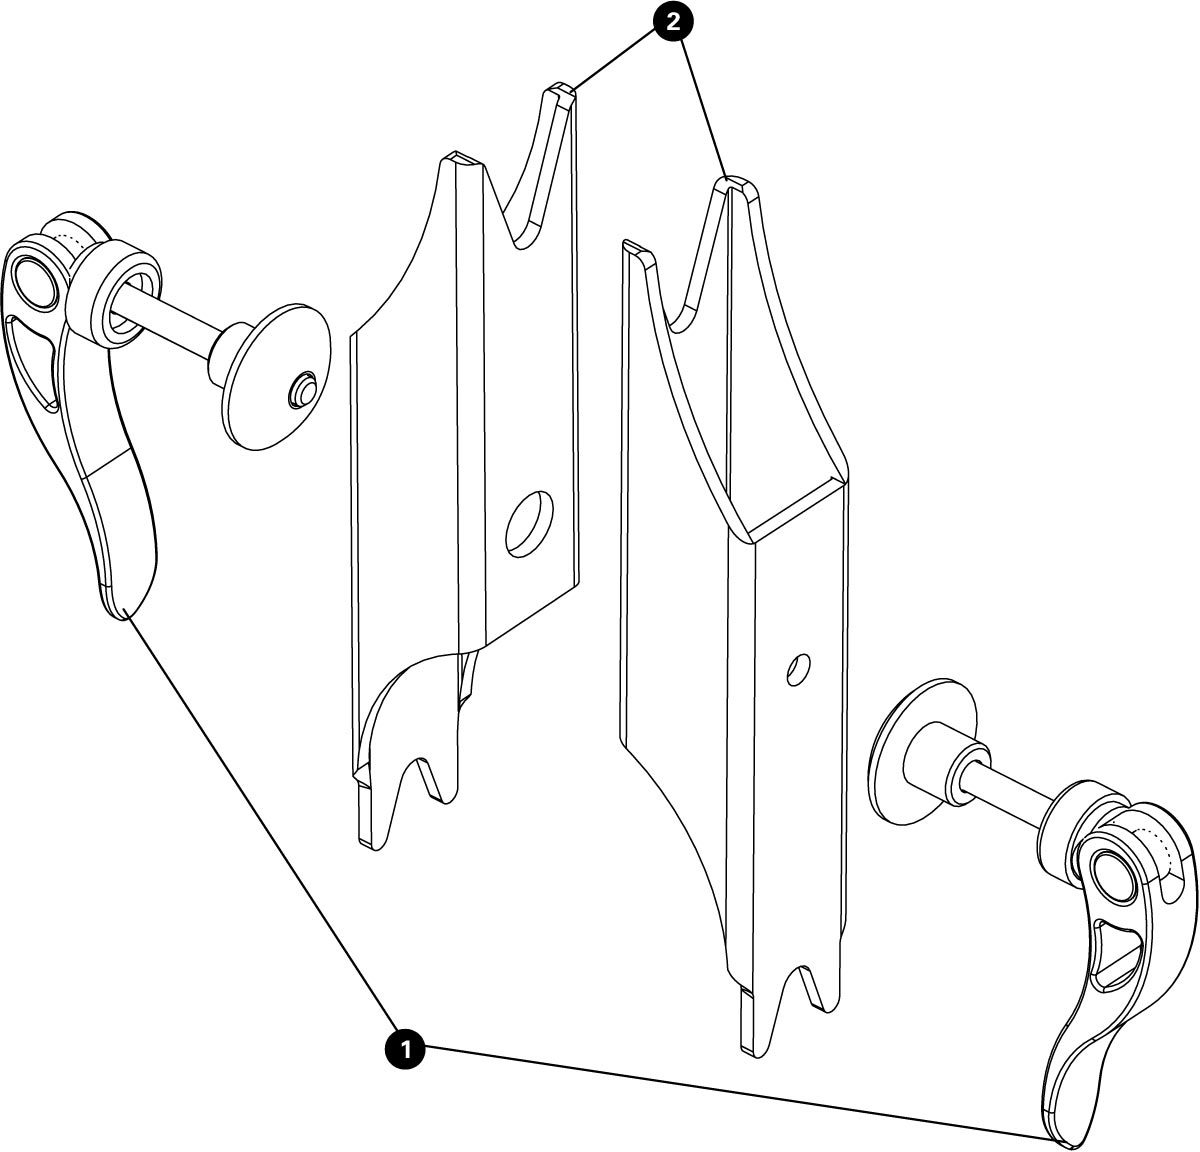 Parts diagram for TS-2EXT.2 Truing Stand Extensions / Adaptors, click to enlarge